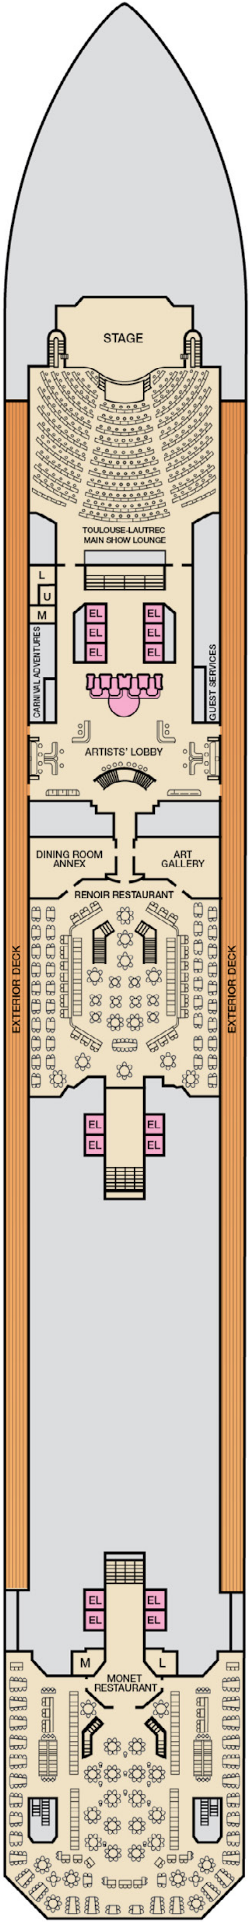 Carnival Conquest Lobby Deck Plan